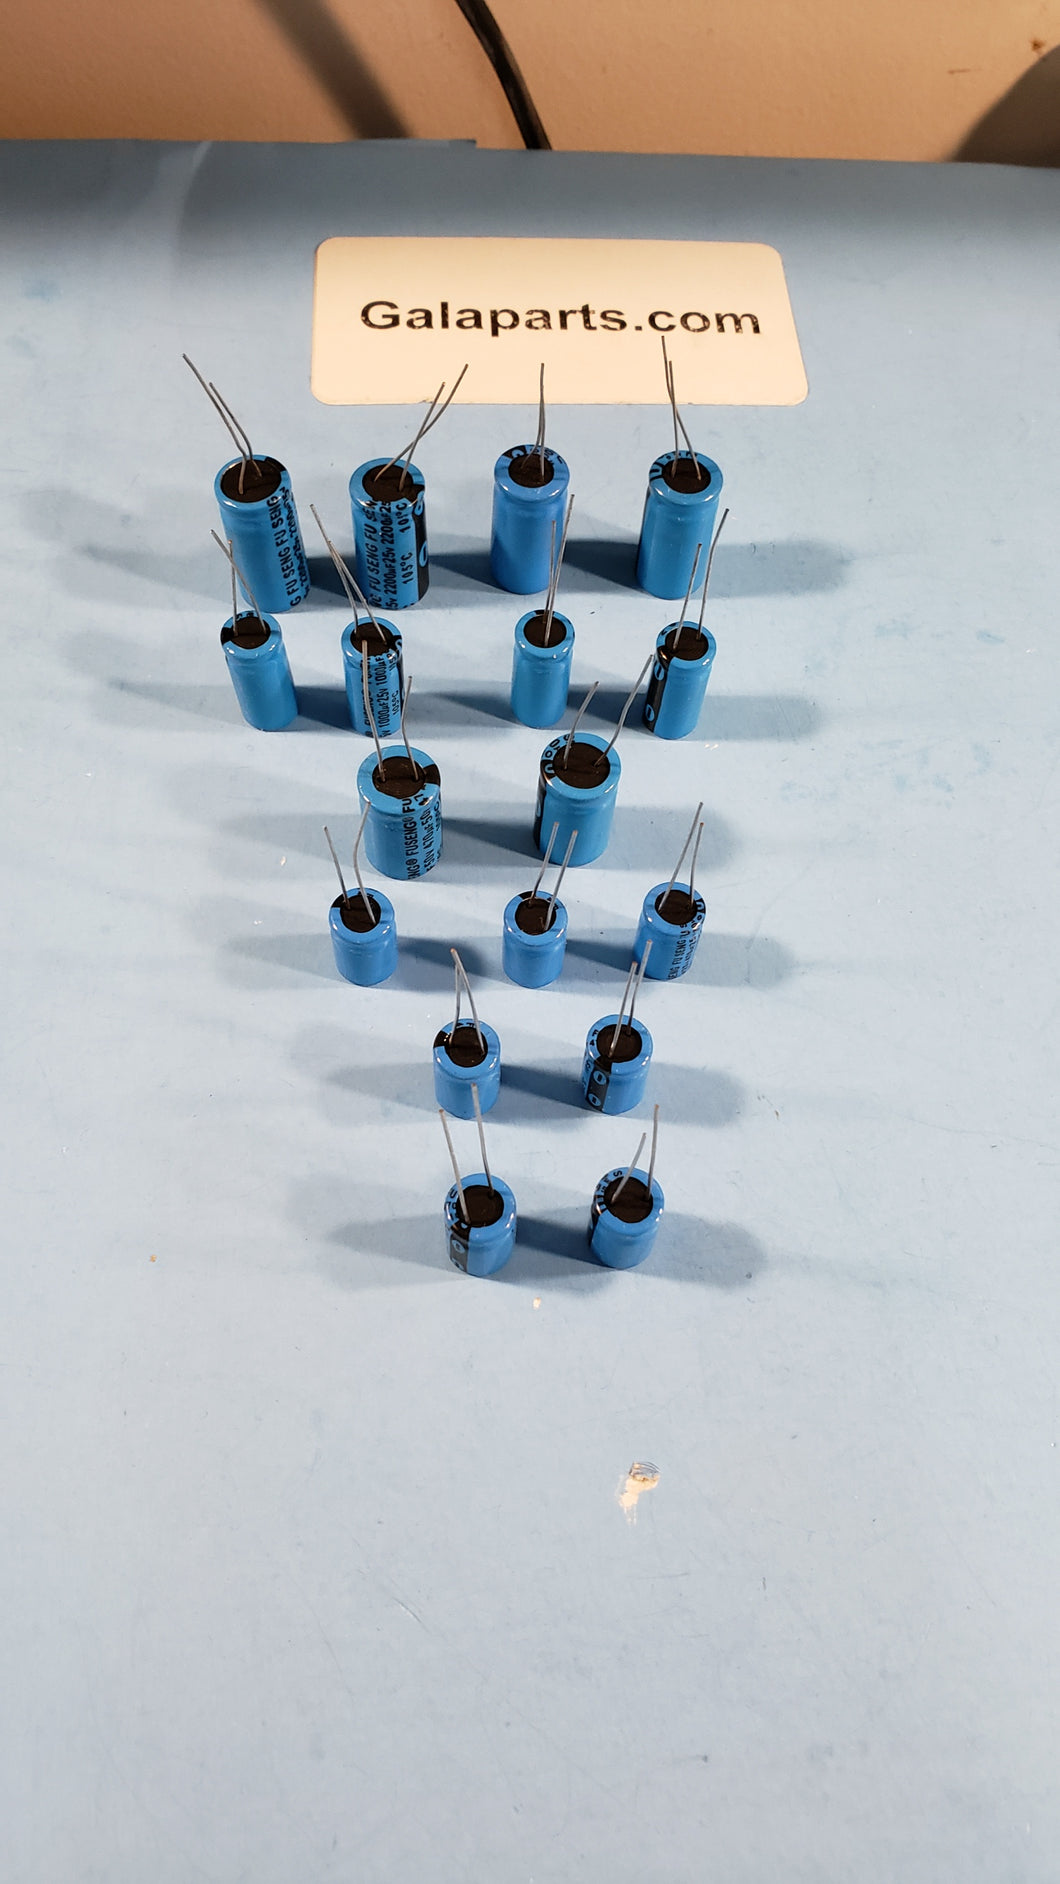 220uF 330uF 470uF 1000uF 2200uF Electrolytic Capacitor KIT,  FREE CANADA SHIPPING - Electronics TV Parts - GalaParts.com